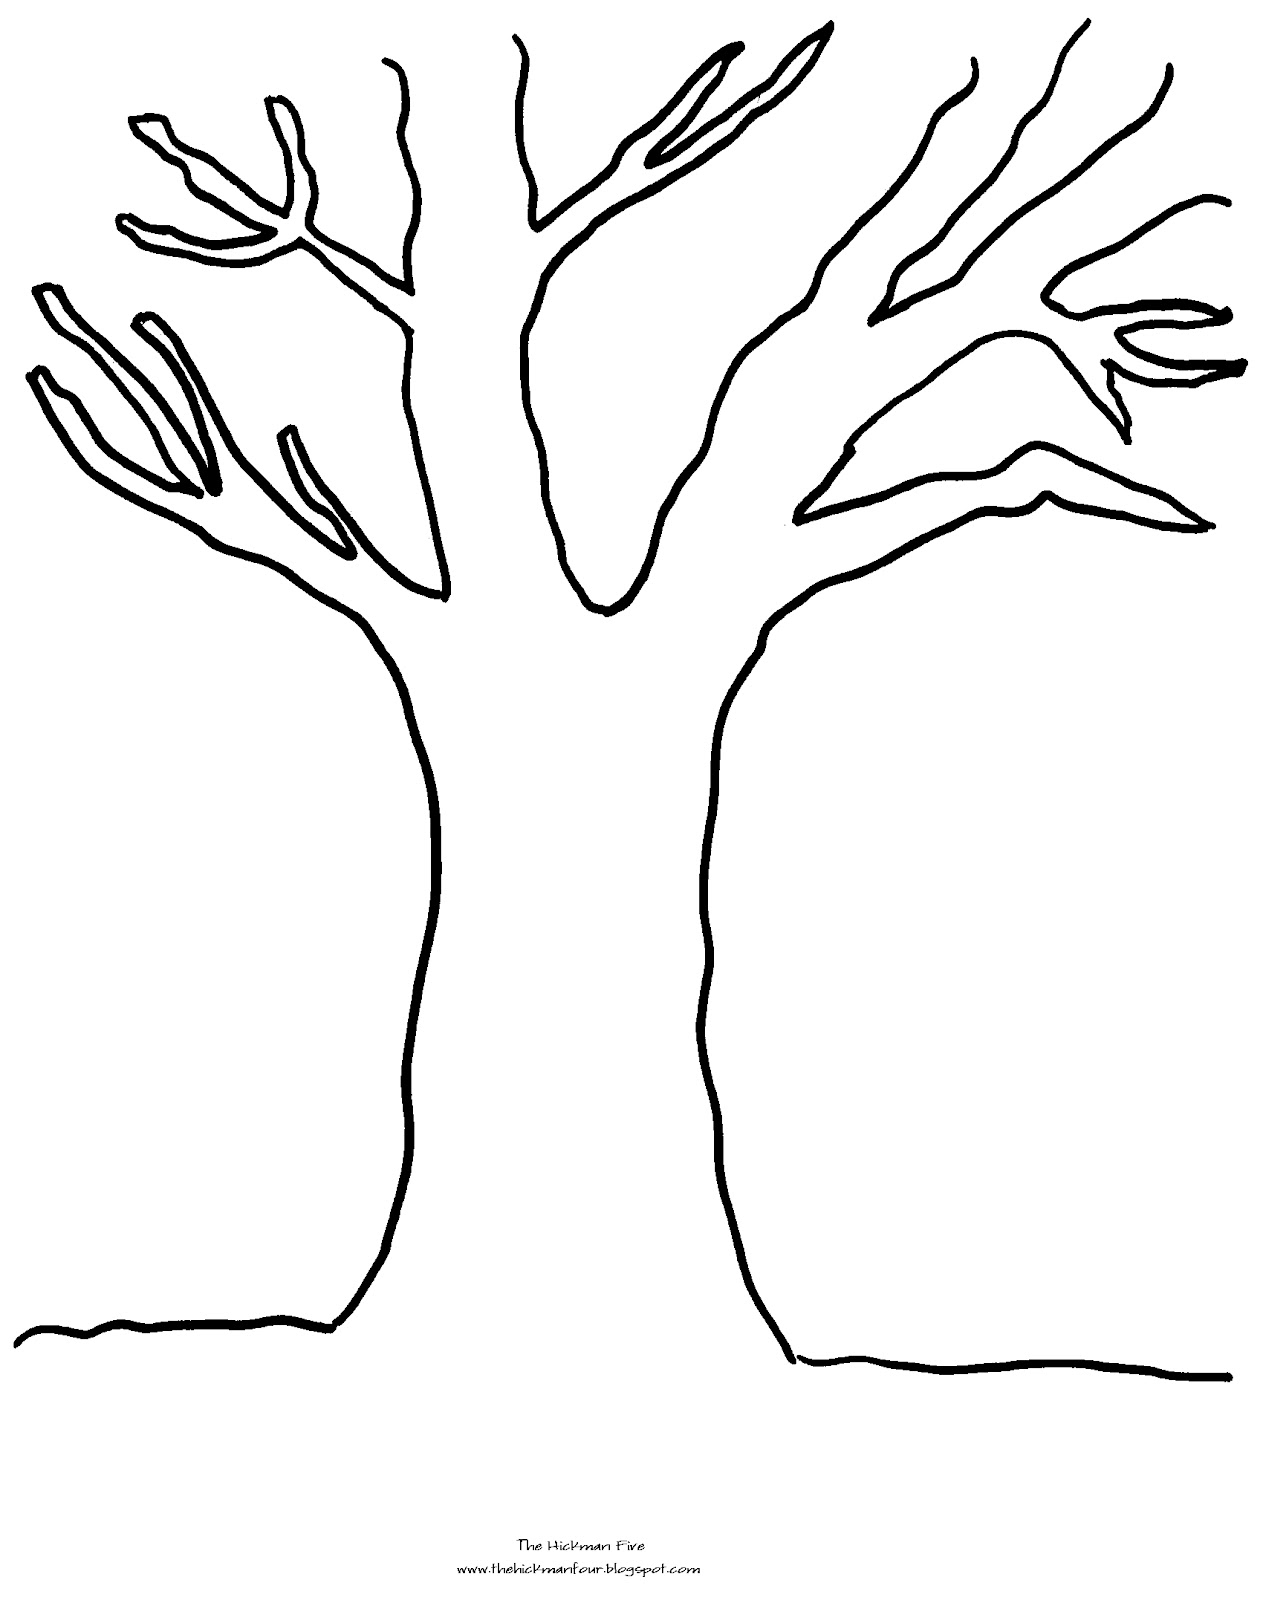 Tree_Coloring_Pages_With_No_Leaves_01